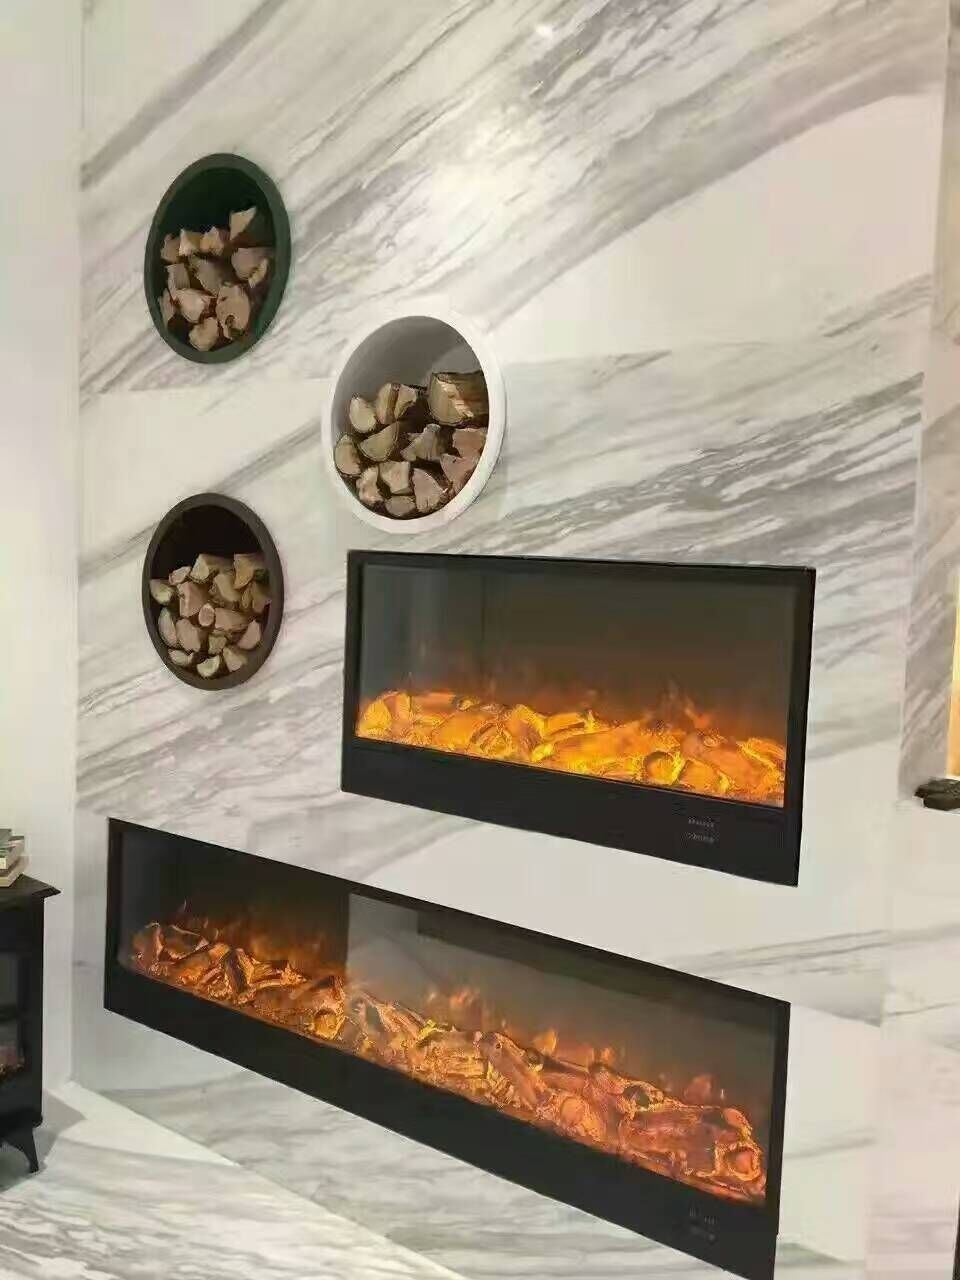 free shipping to vietnam cheap home heater electric fireplace with fake - Electric Fireplace Logs